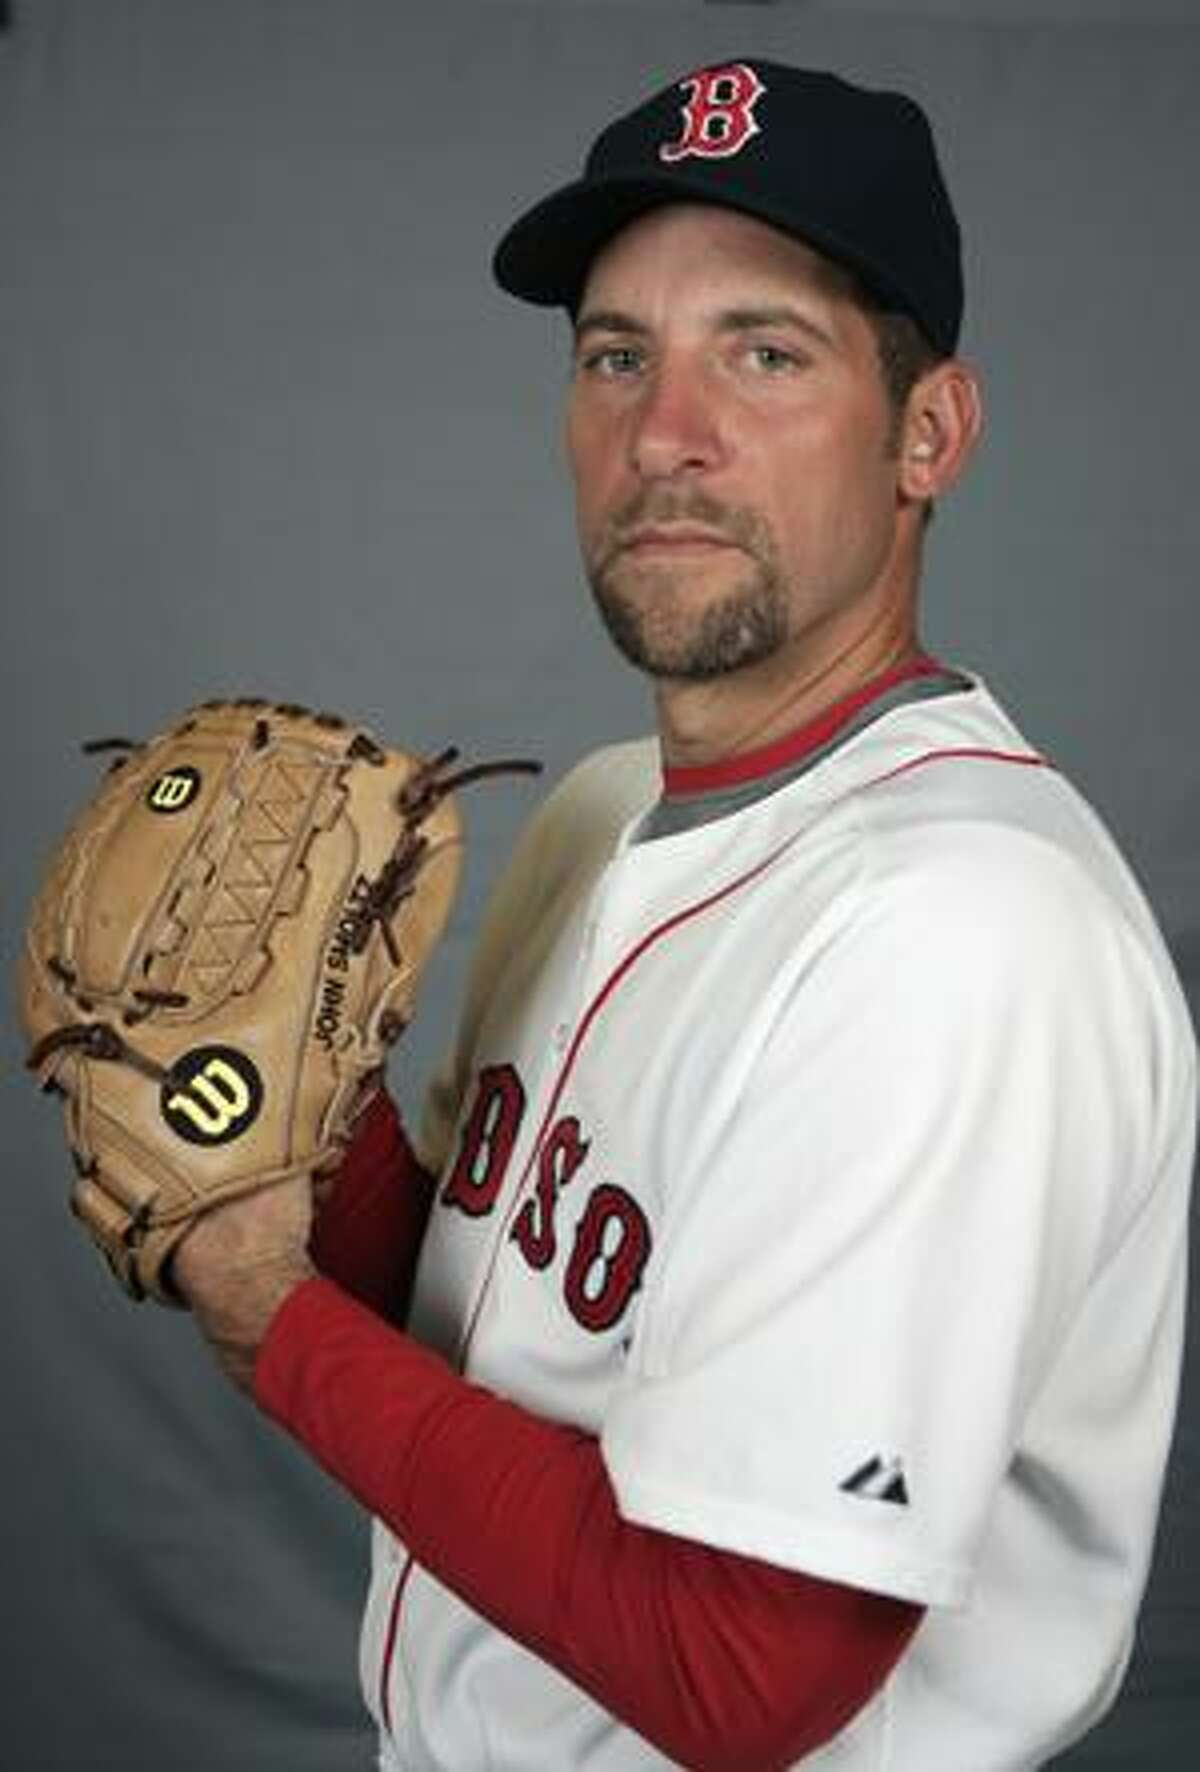 FILE -- This is a 2009 file photo showing Boston Red Sox baseball player John Smoltz. The Cardinals have already fattened their batting order with the addition of slugger Matt Holliday. Now they're expected to beef up their pitching by signing John Smoltz. (AP Photo/Steven Senne, File)